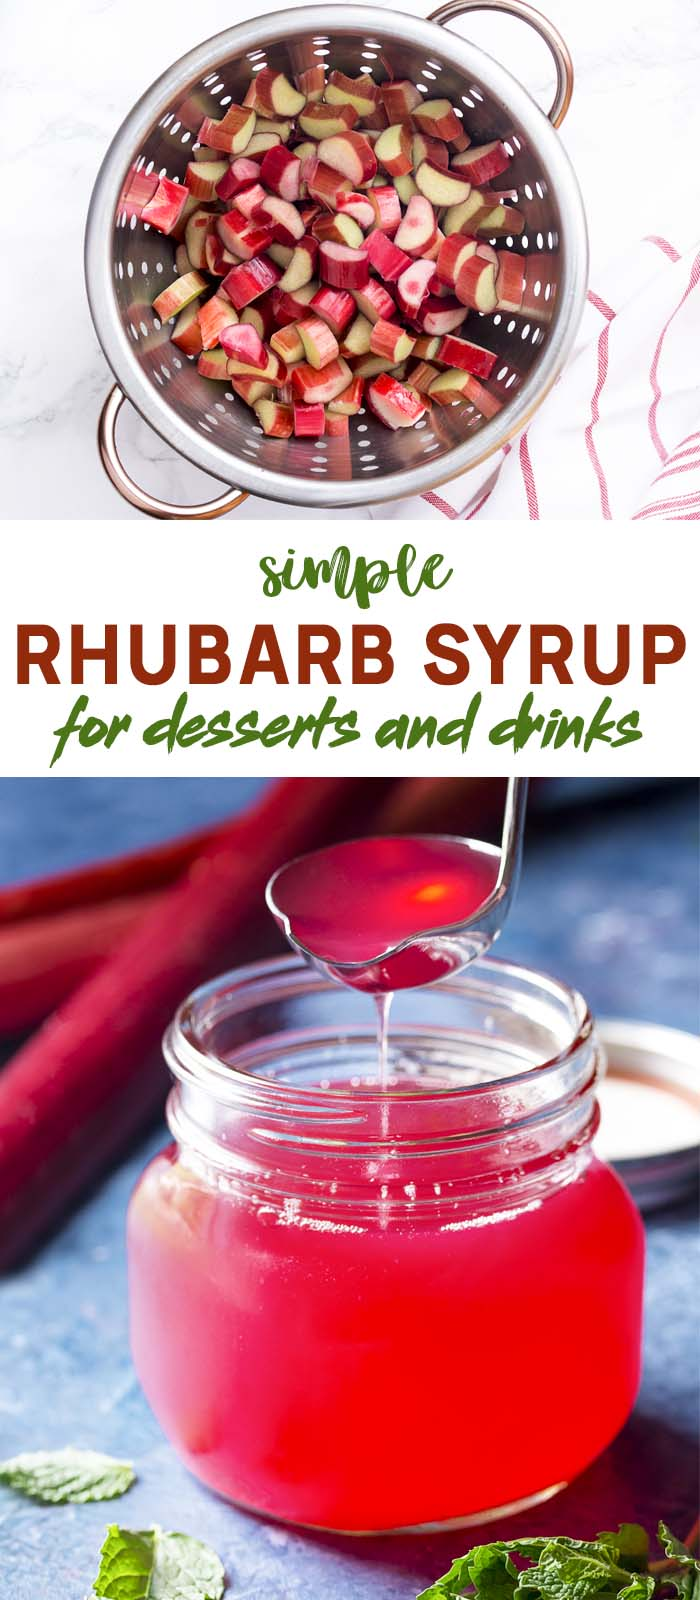 Chopped rhubarb in a colander and glass jar of syrup with text overlay - Simple Rhubarb Syrup.